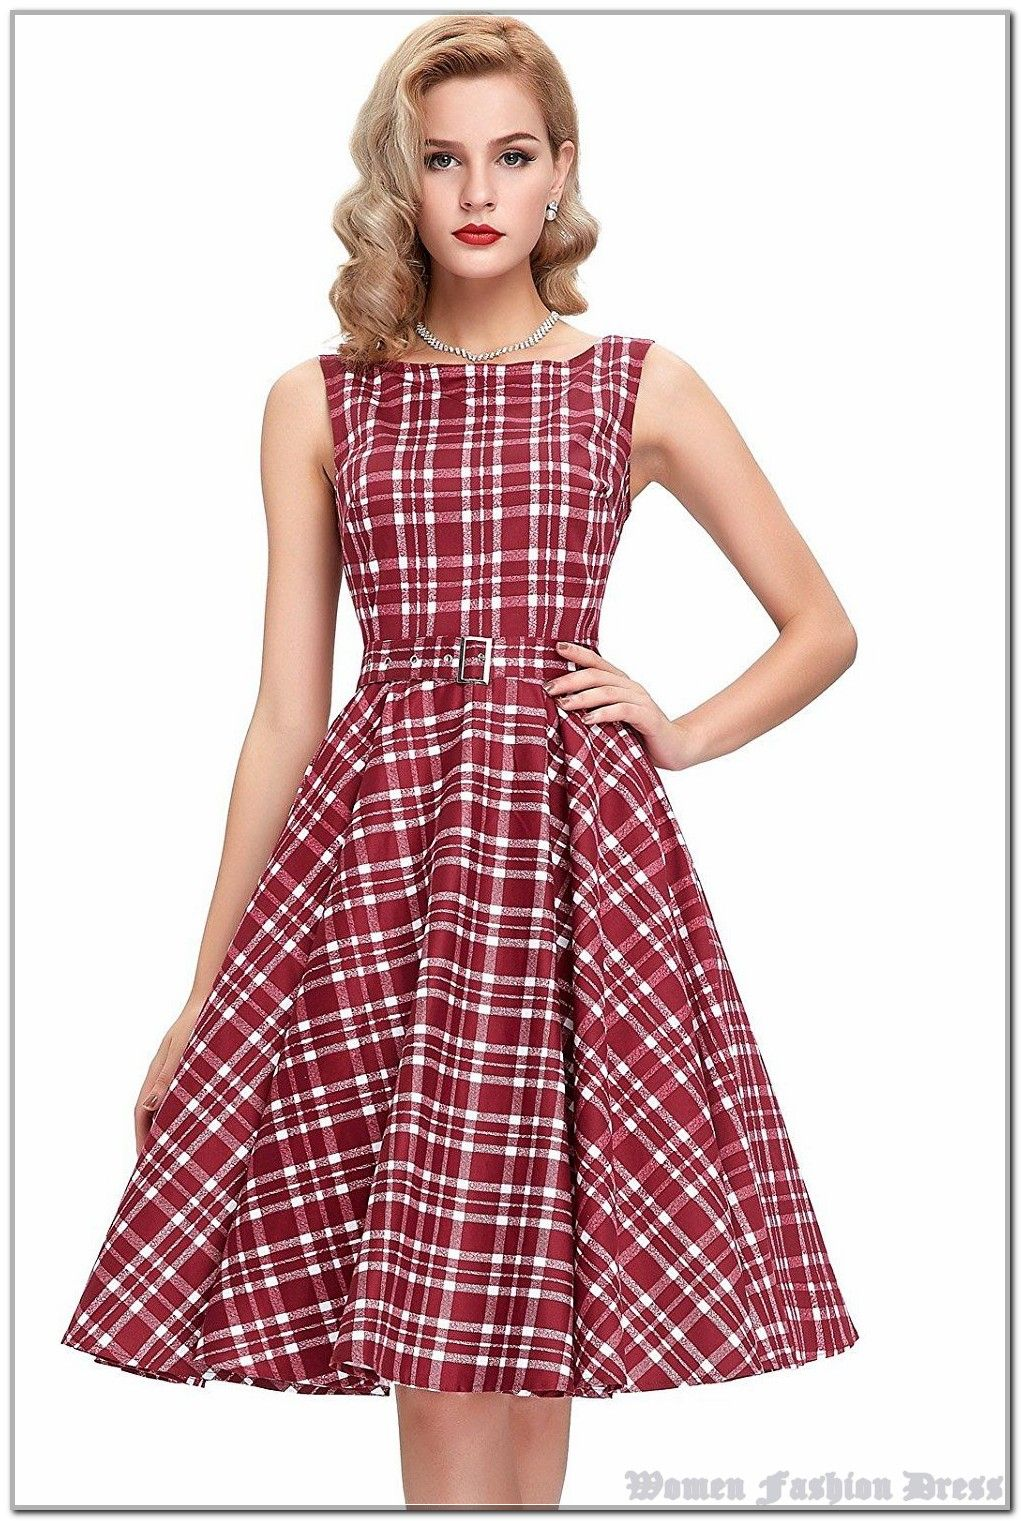 What Everyone Must Know About Women Fashion Dress